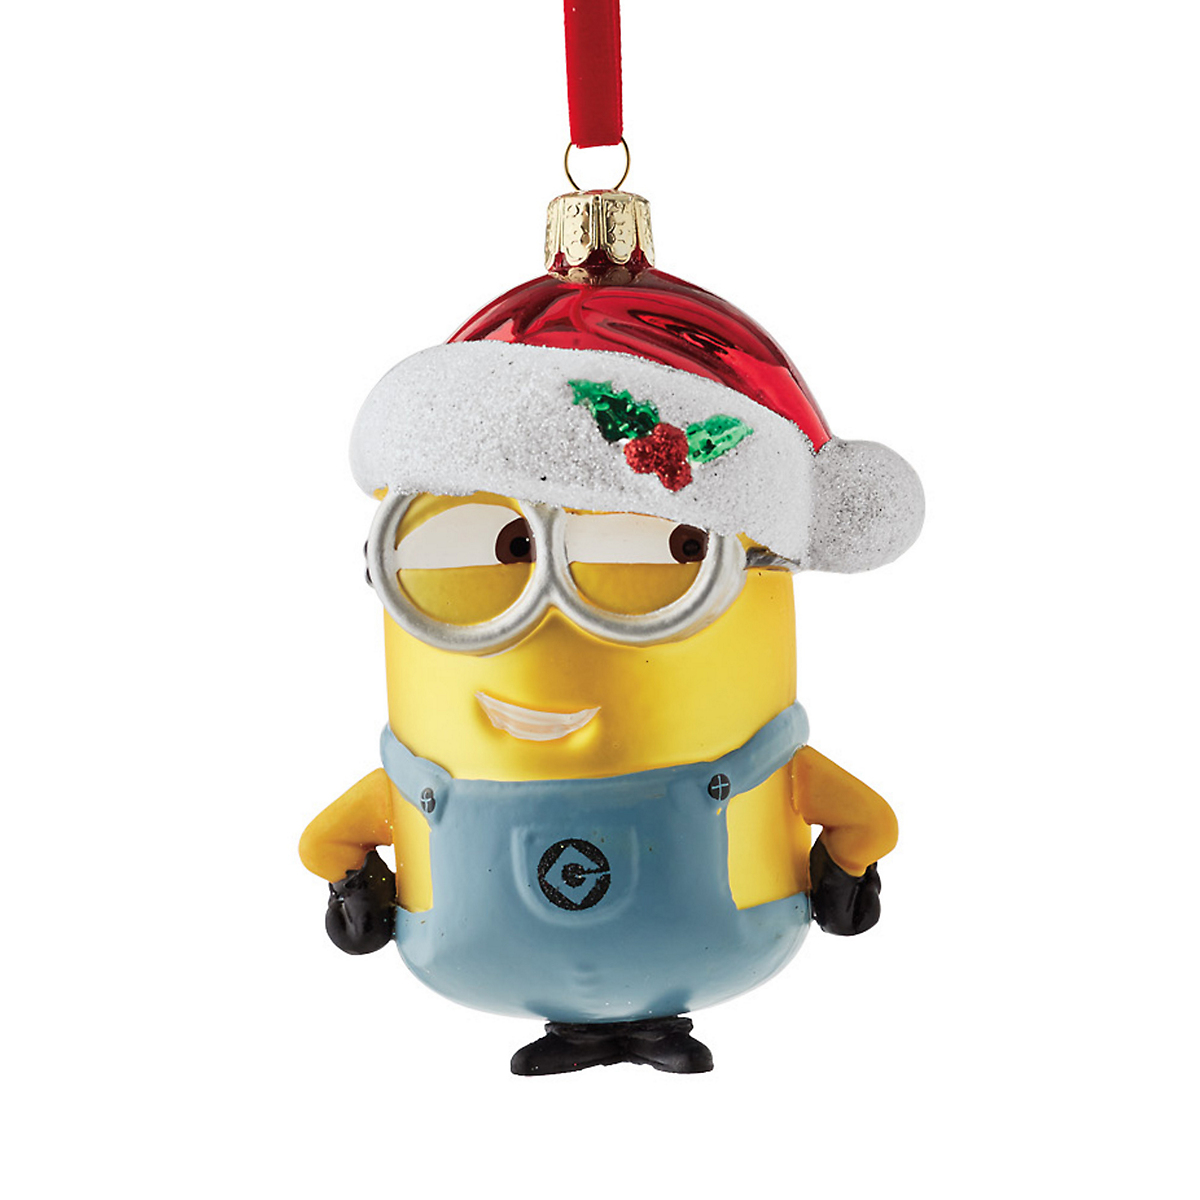 The Minions Christmas Ornament